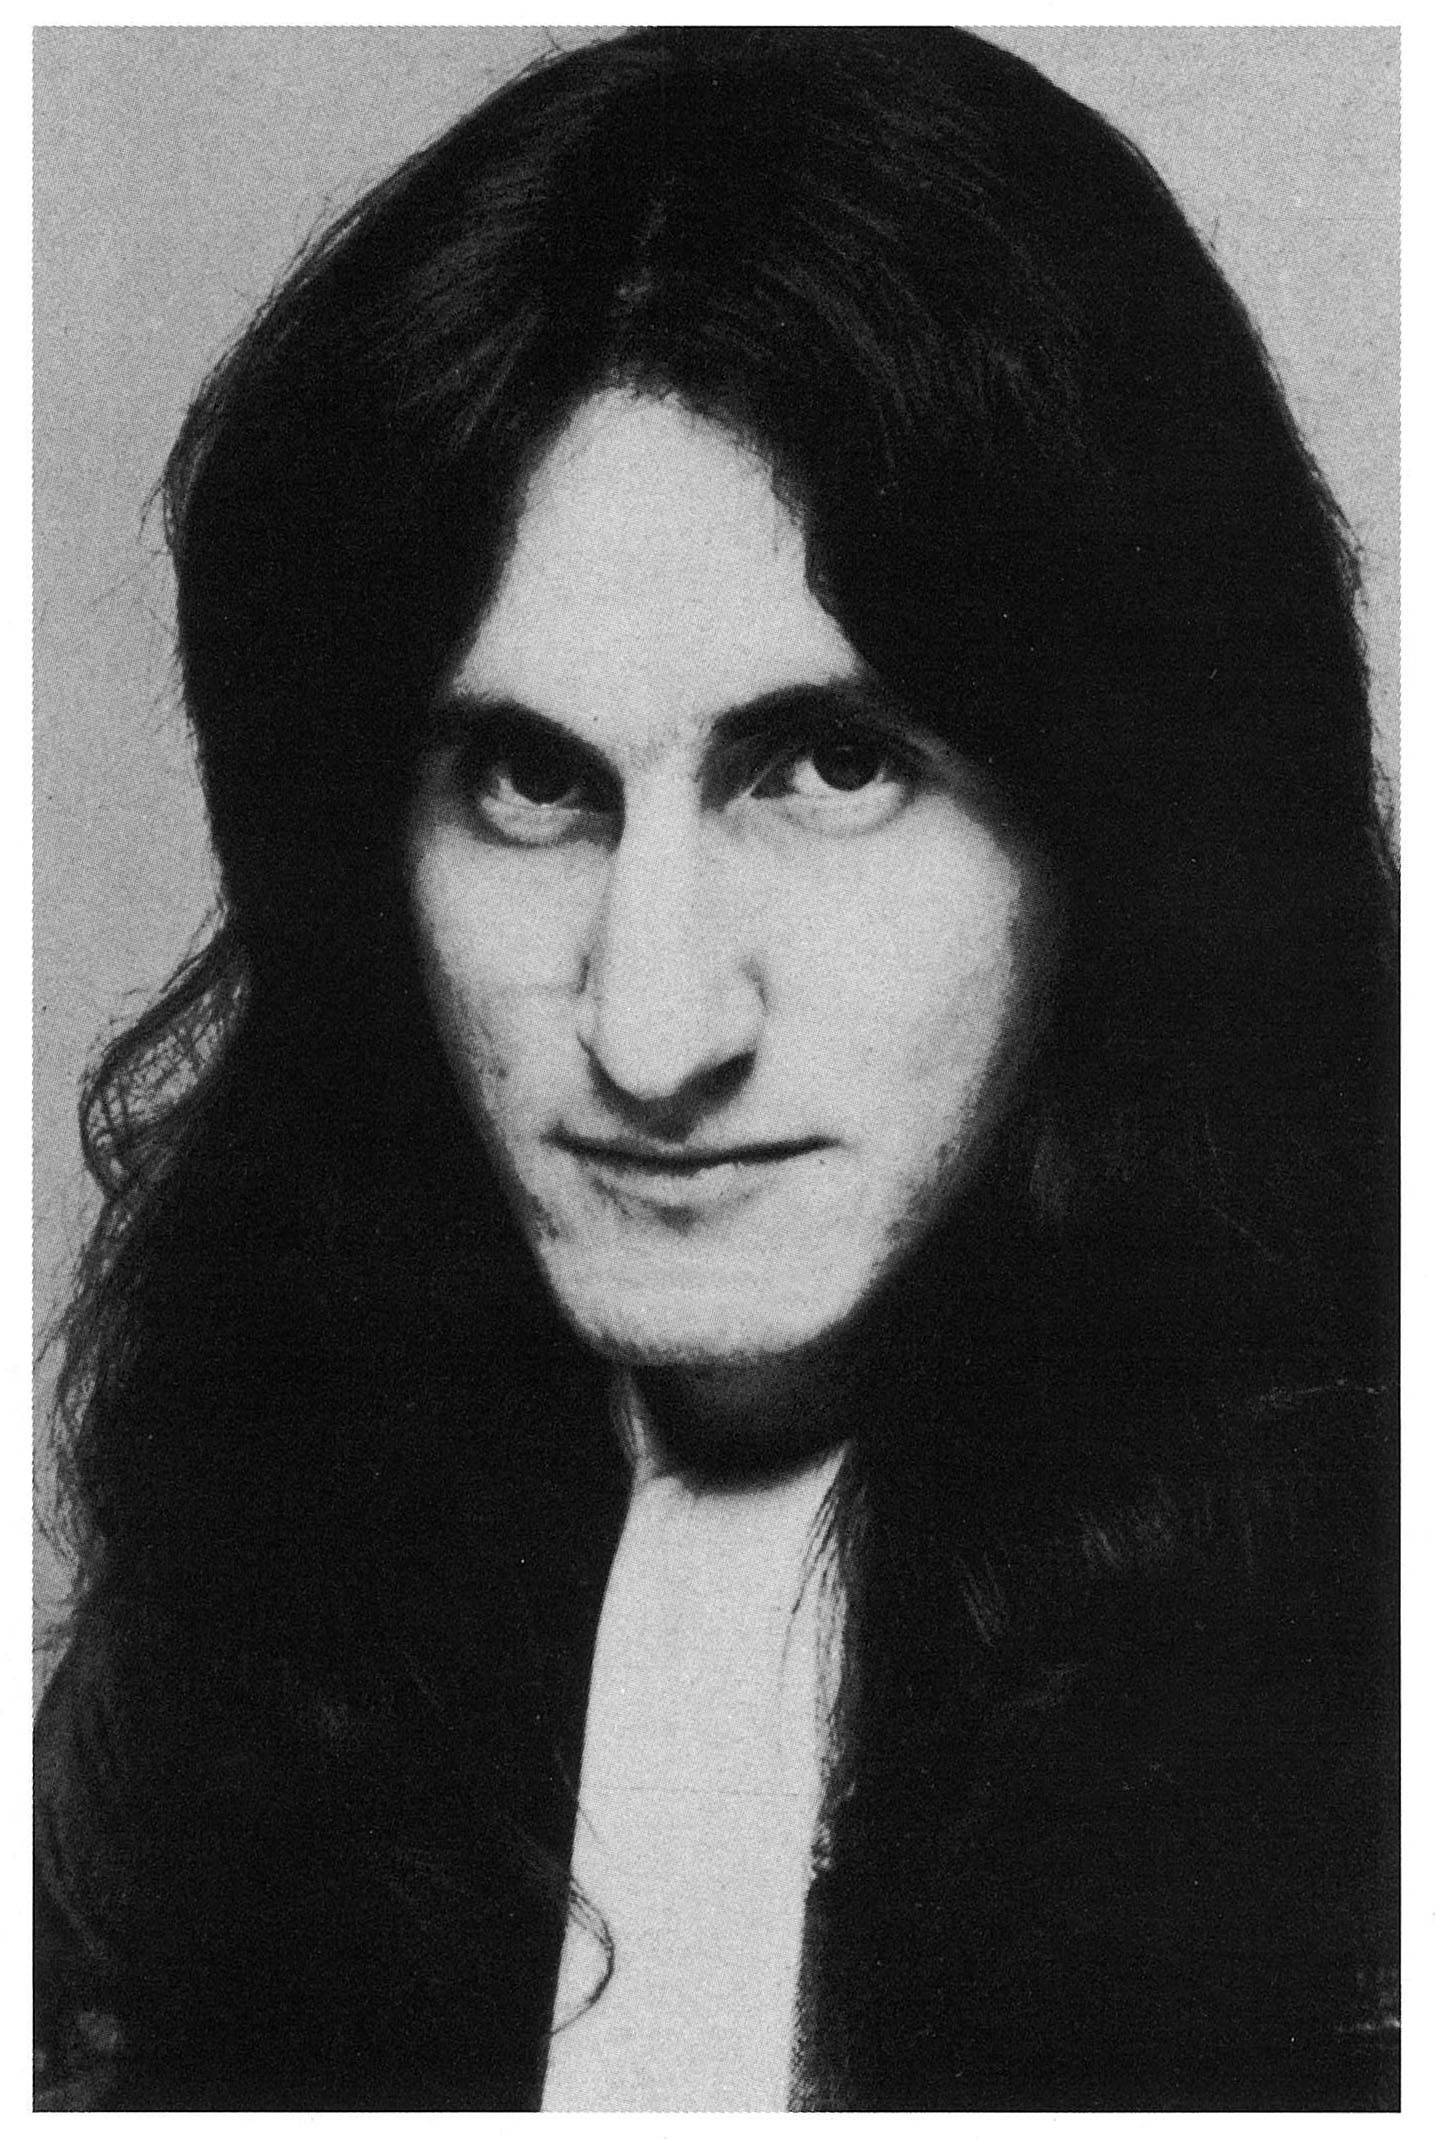 Geddy Lee Young Pictures to Pin on Pinterest - PinsDaddy